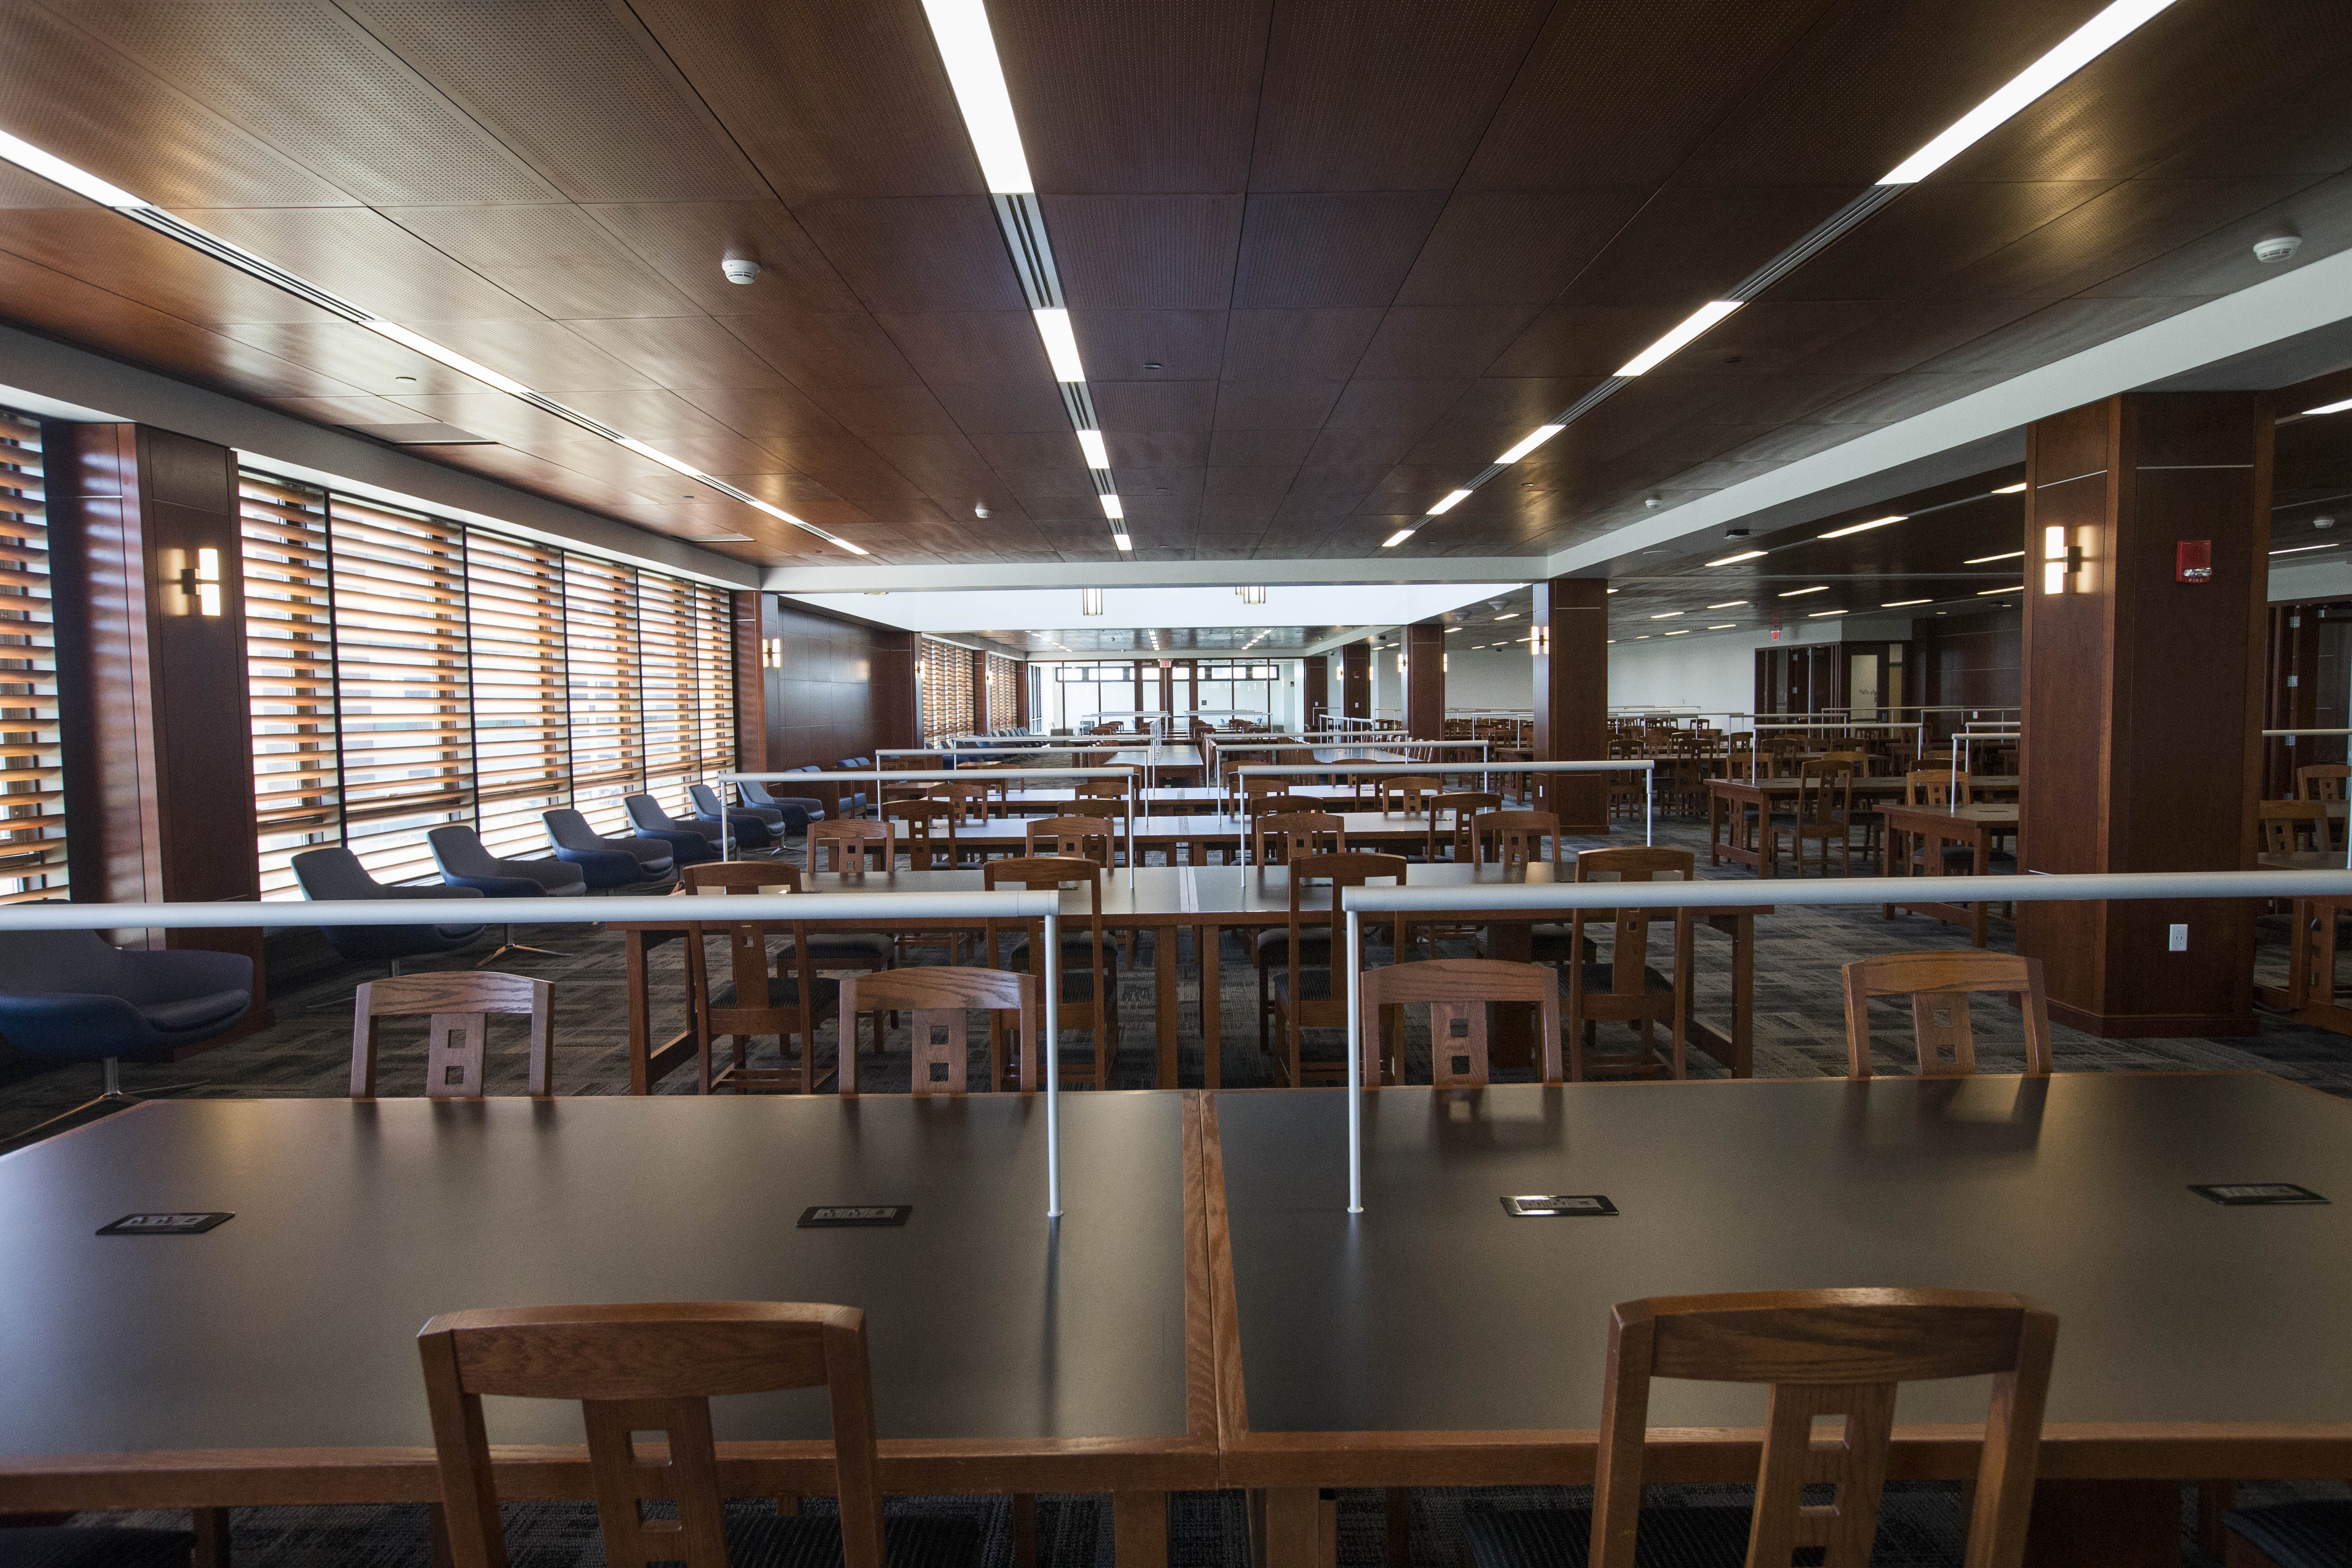 The Grand Reading Room in the newly renovated Silverman Library at UB, which is opening after a $7 million overhaul, Wednesday, Aug. 24, 2016.  (Derek Gee/Buffalo News)